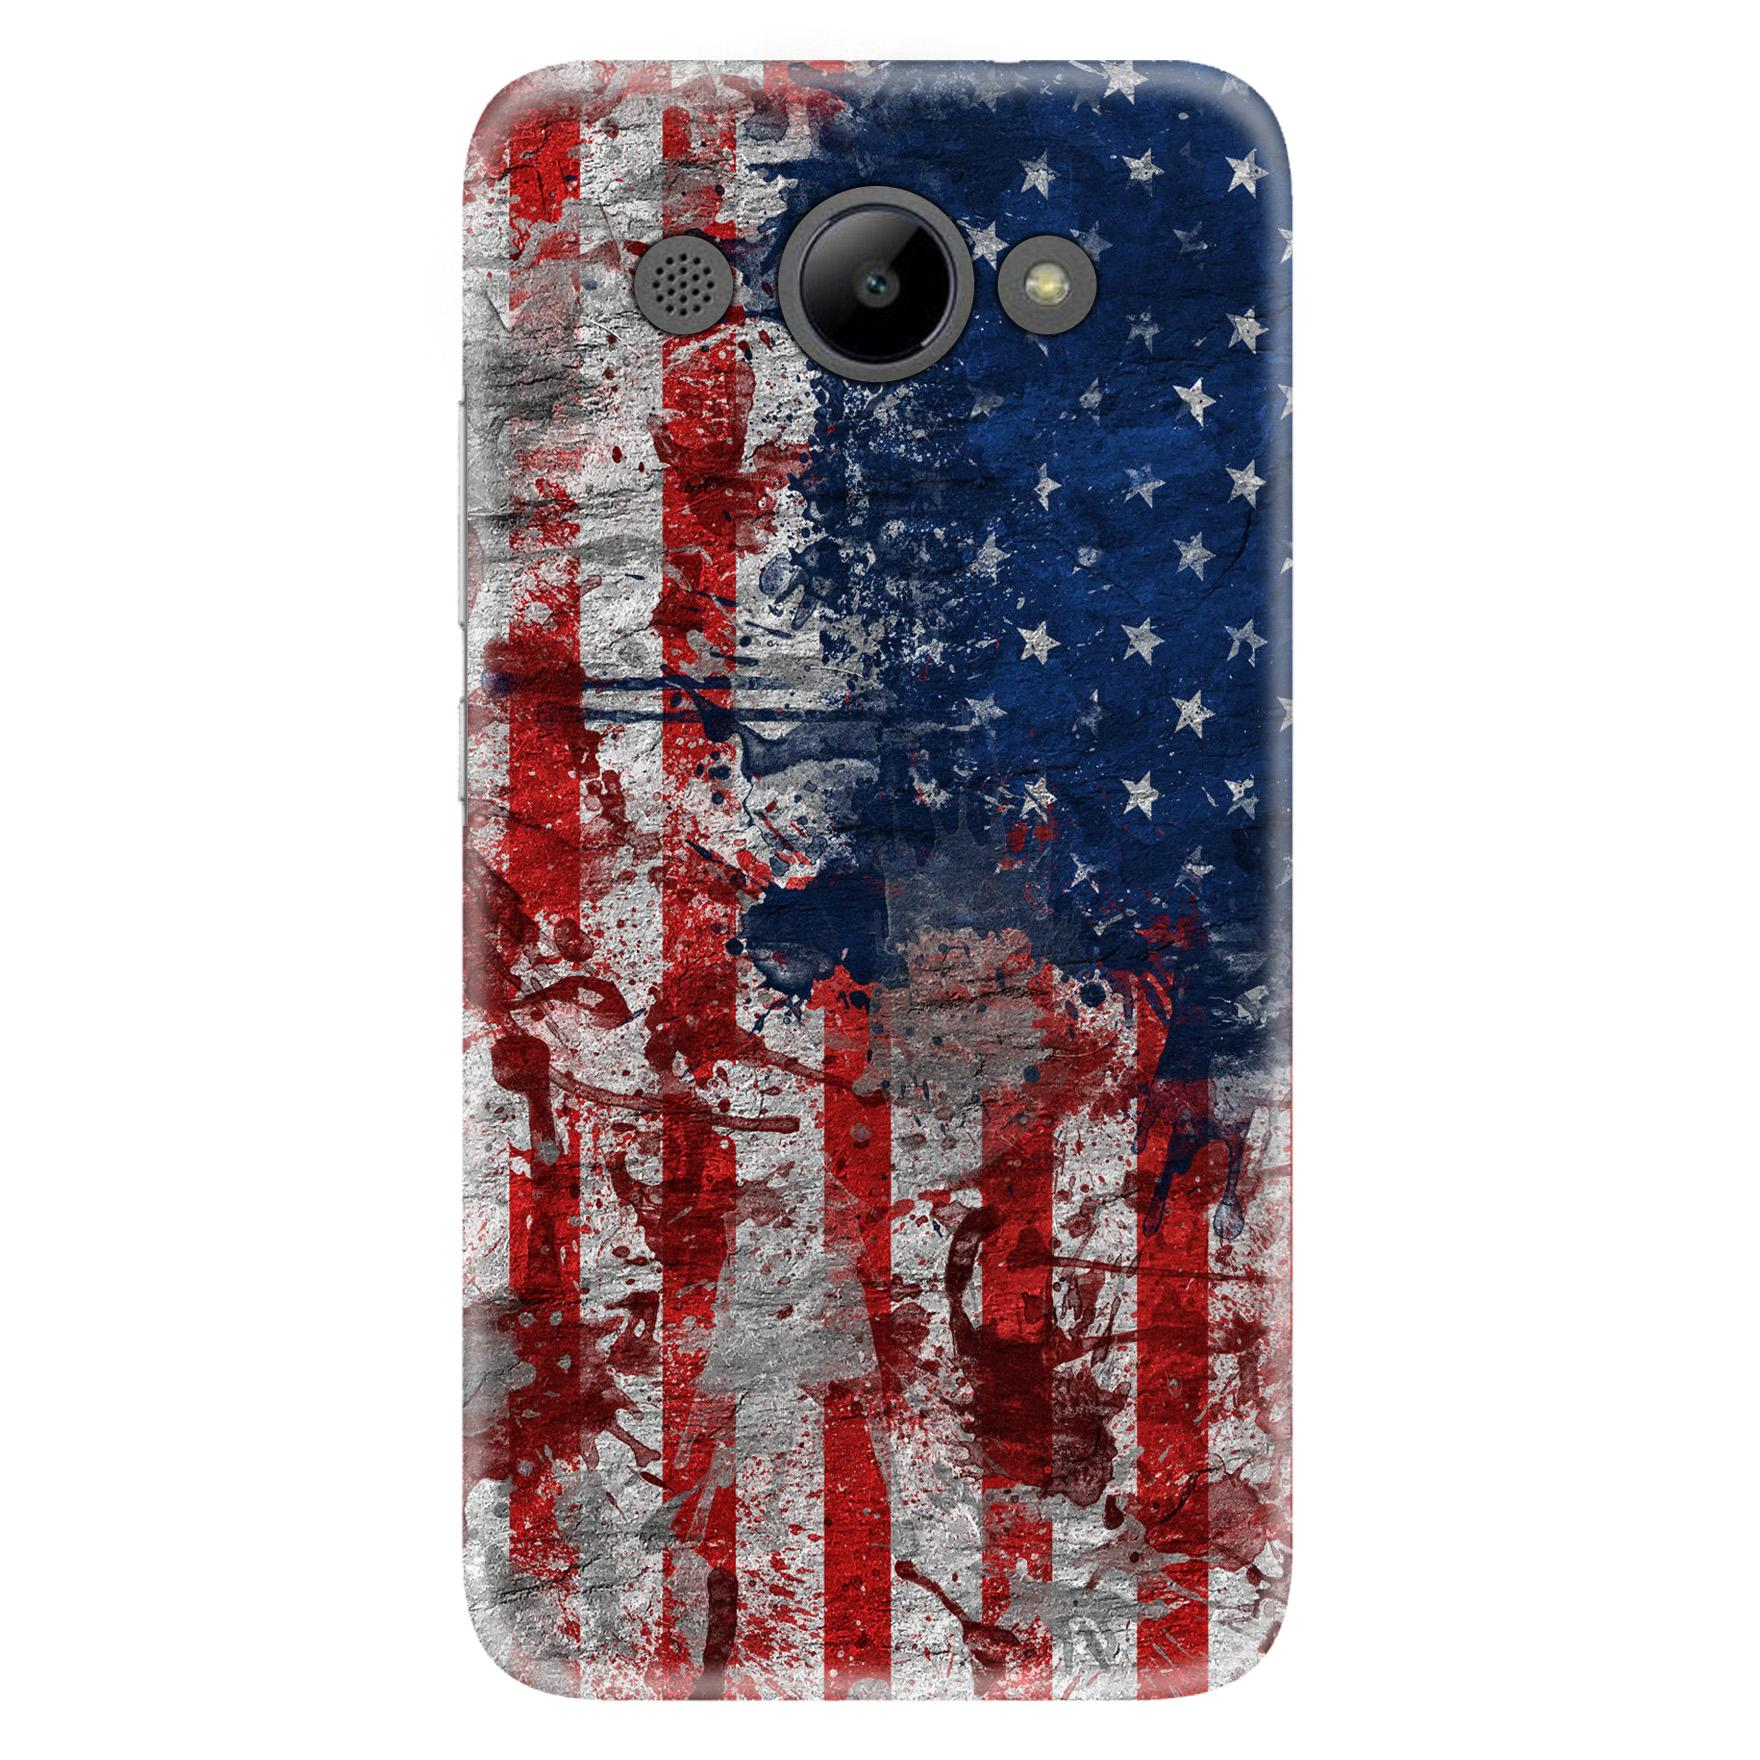 Back Cover for Huawei Y3 2017 / 2018